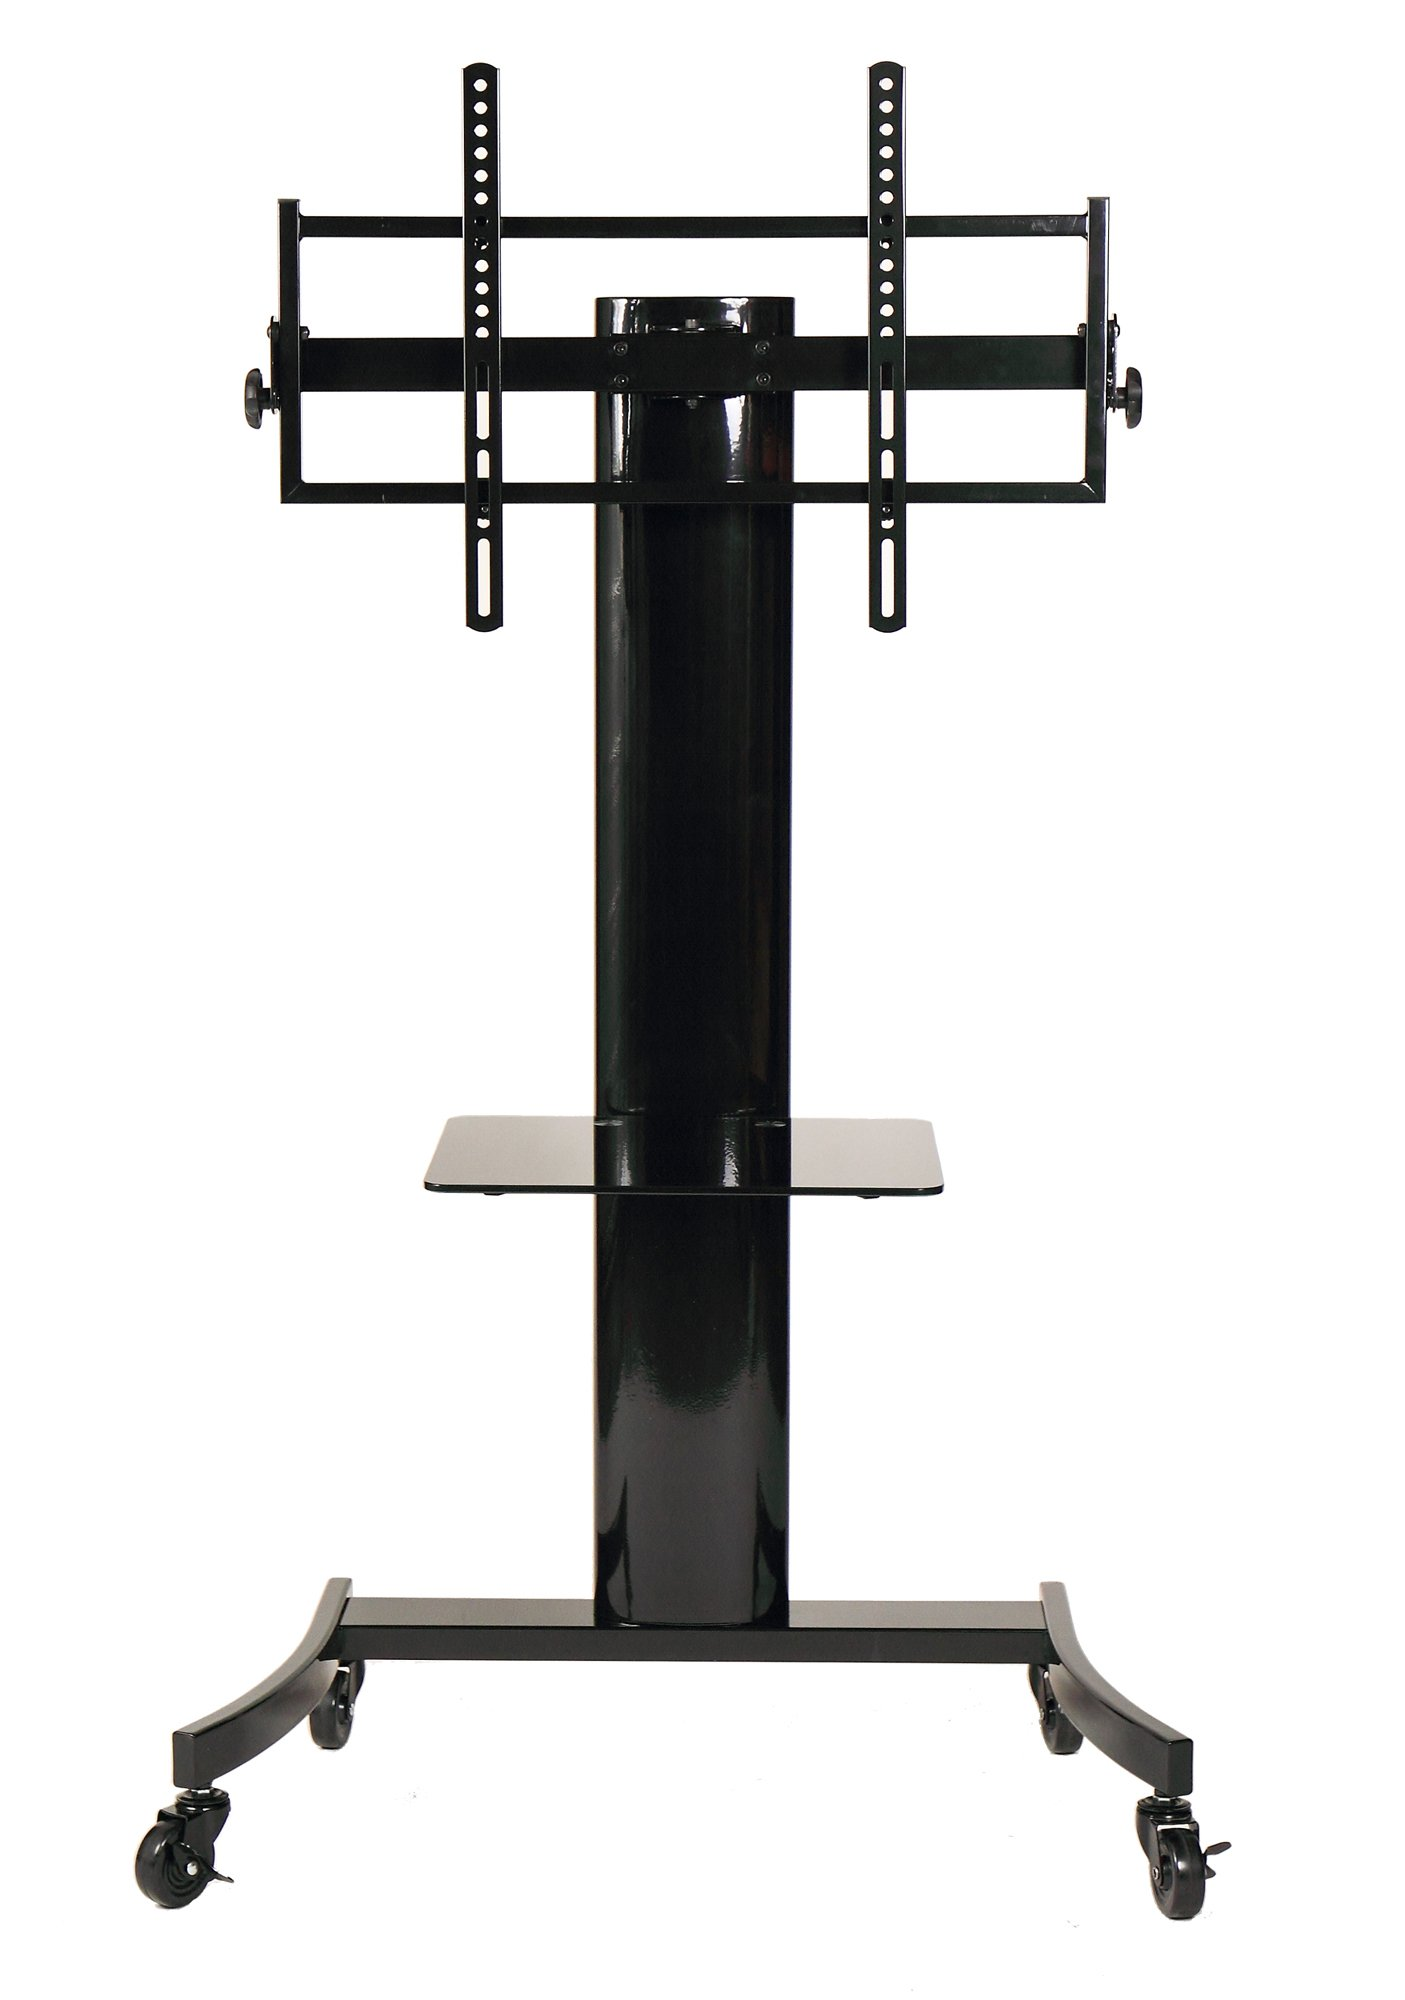 TransDeco Flat Panel TV Cart/Stand with TV Mounting System for 35 to 75'' TV - TD590B, Black